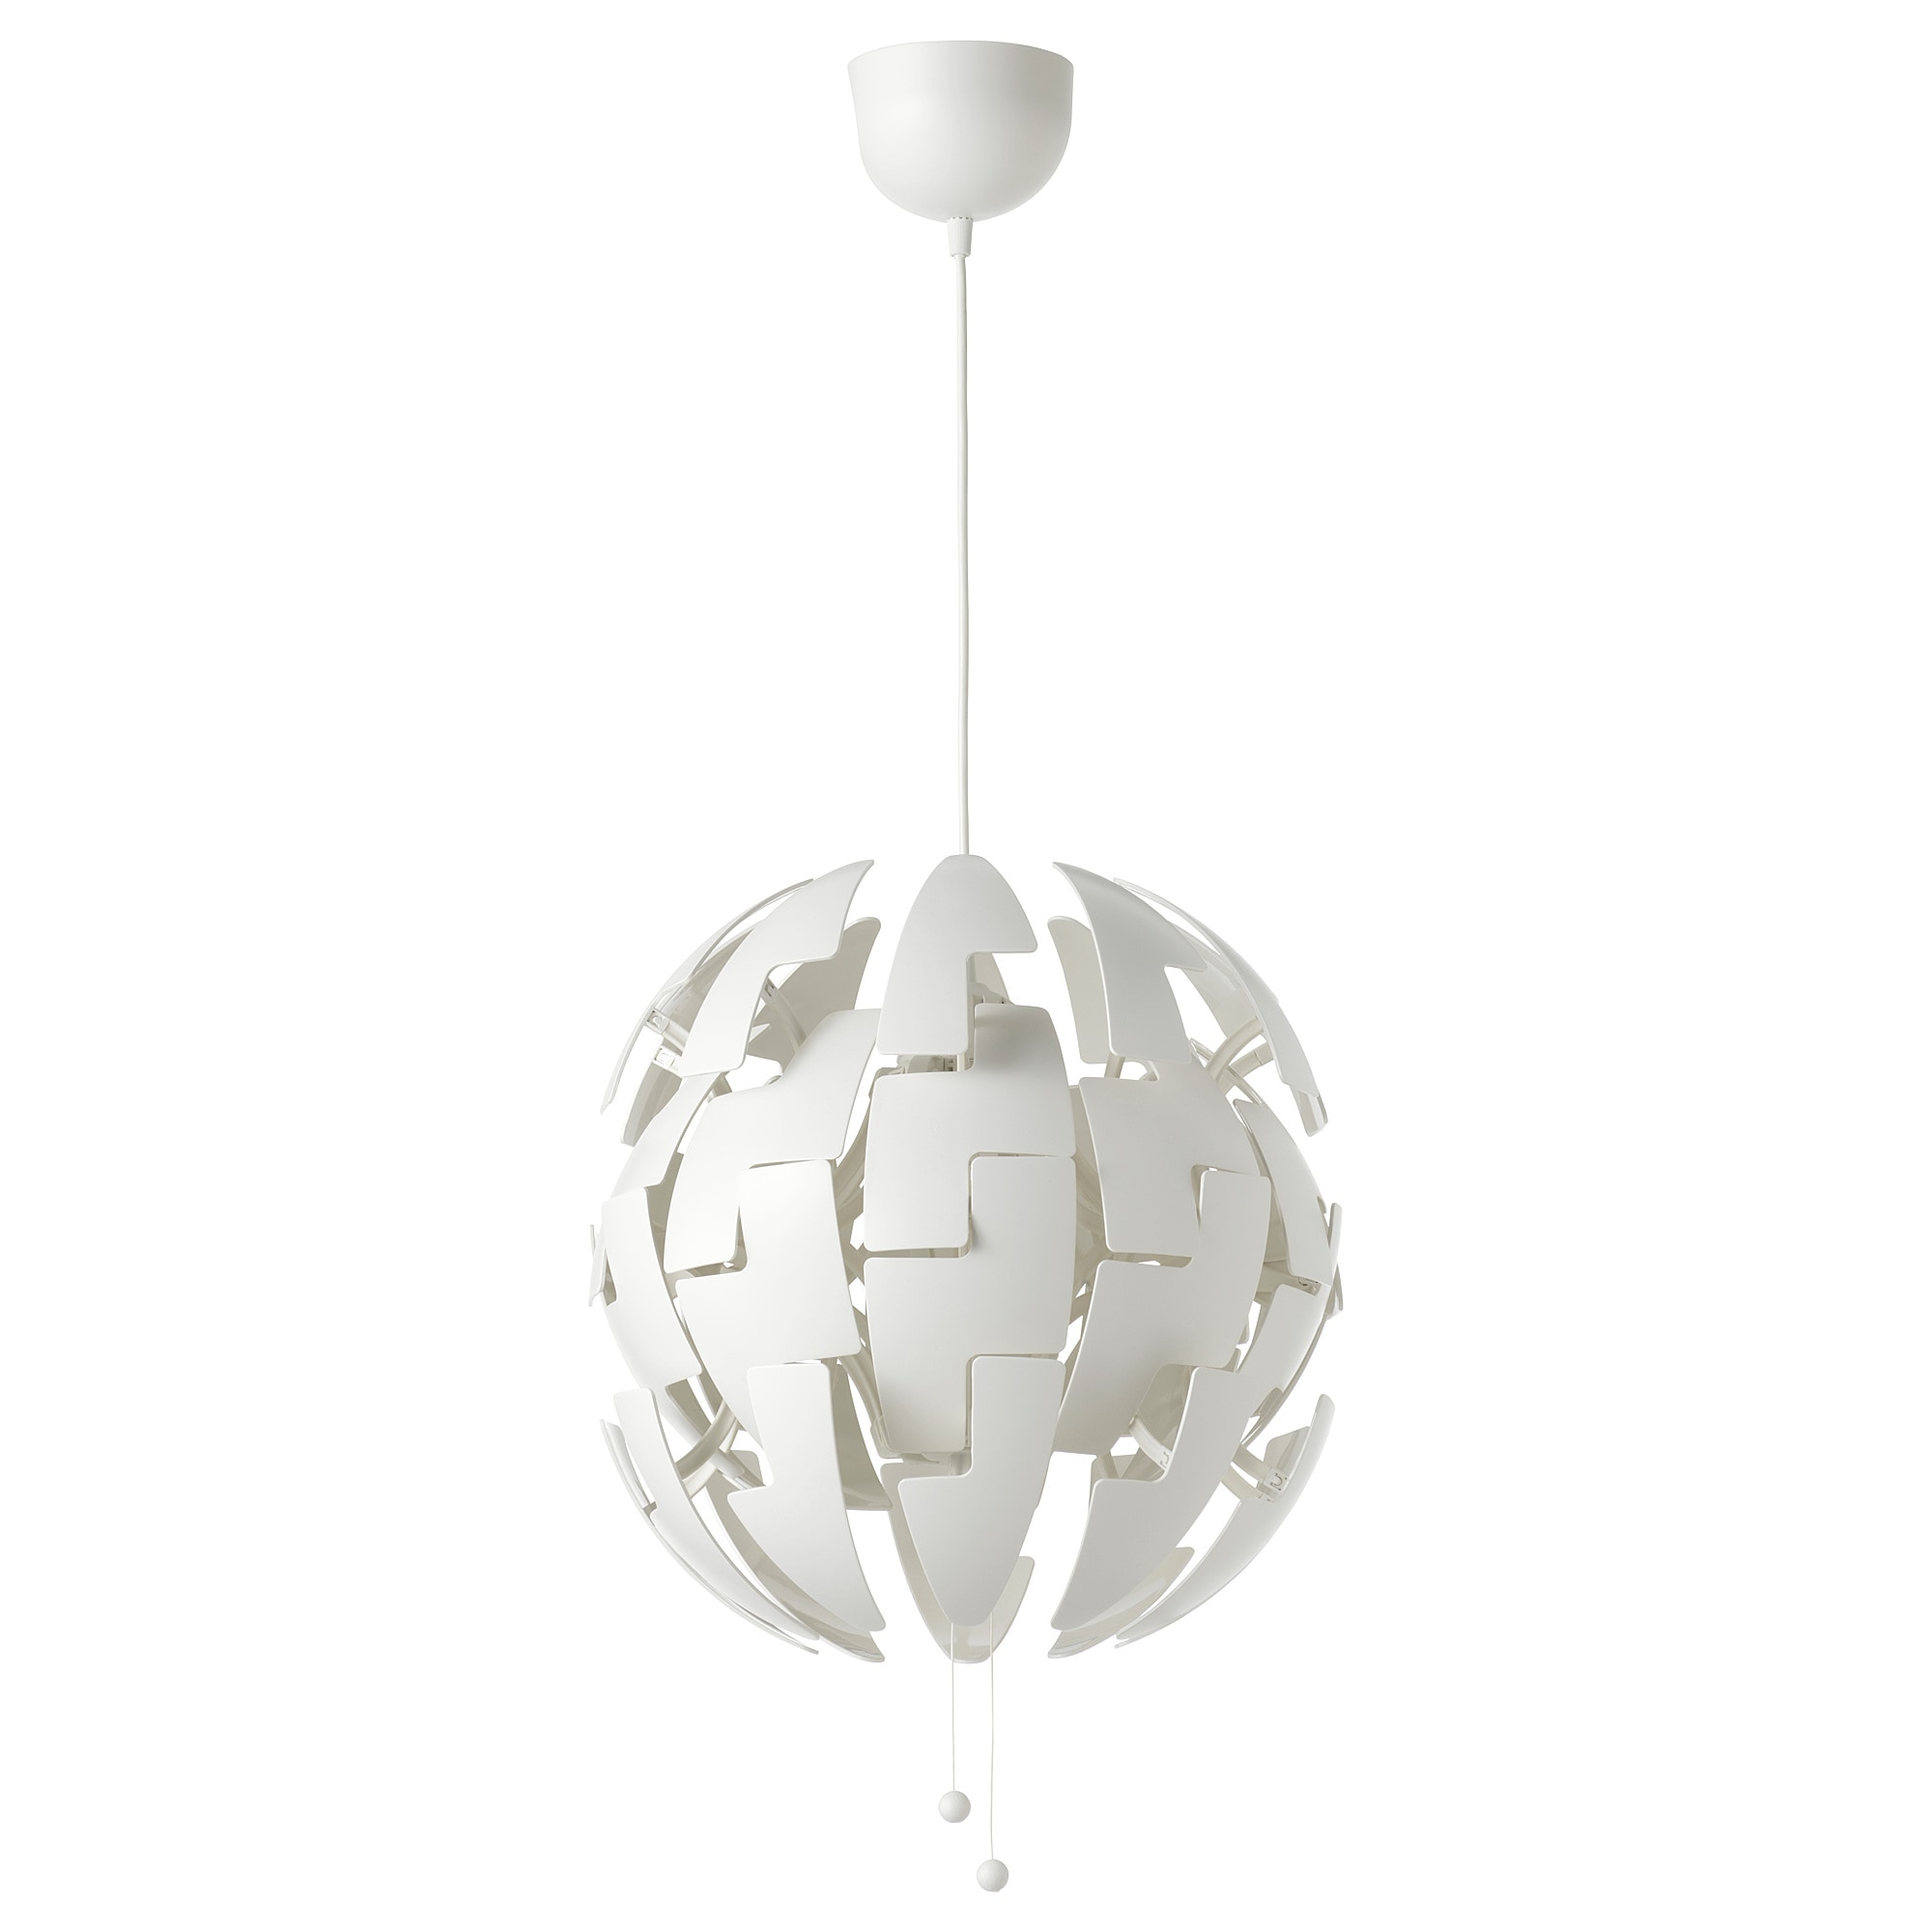 Ikea lighting fixtures ceiling Living Room Feedback Ikea Ikea Ps 2014 Pendant Lamp White Ikea